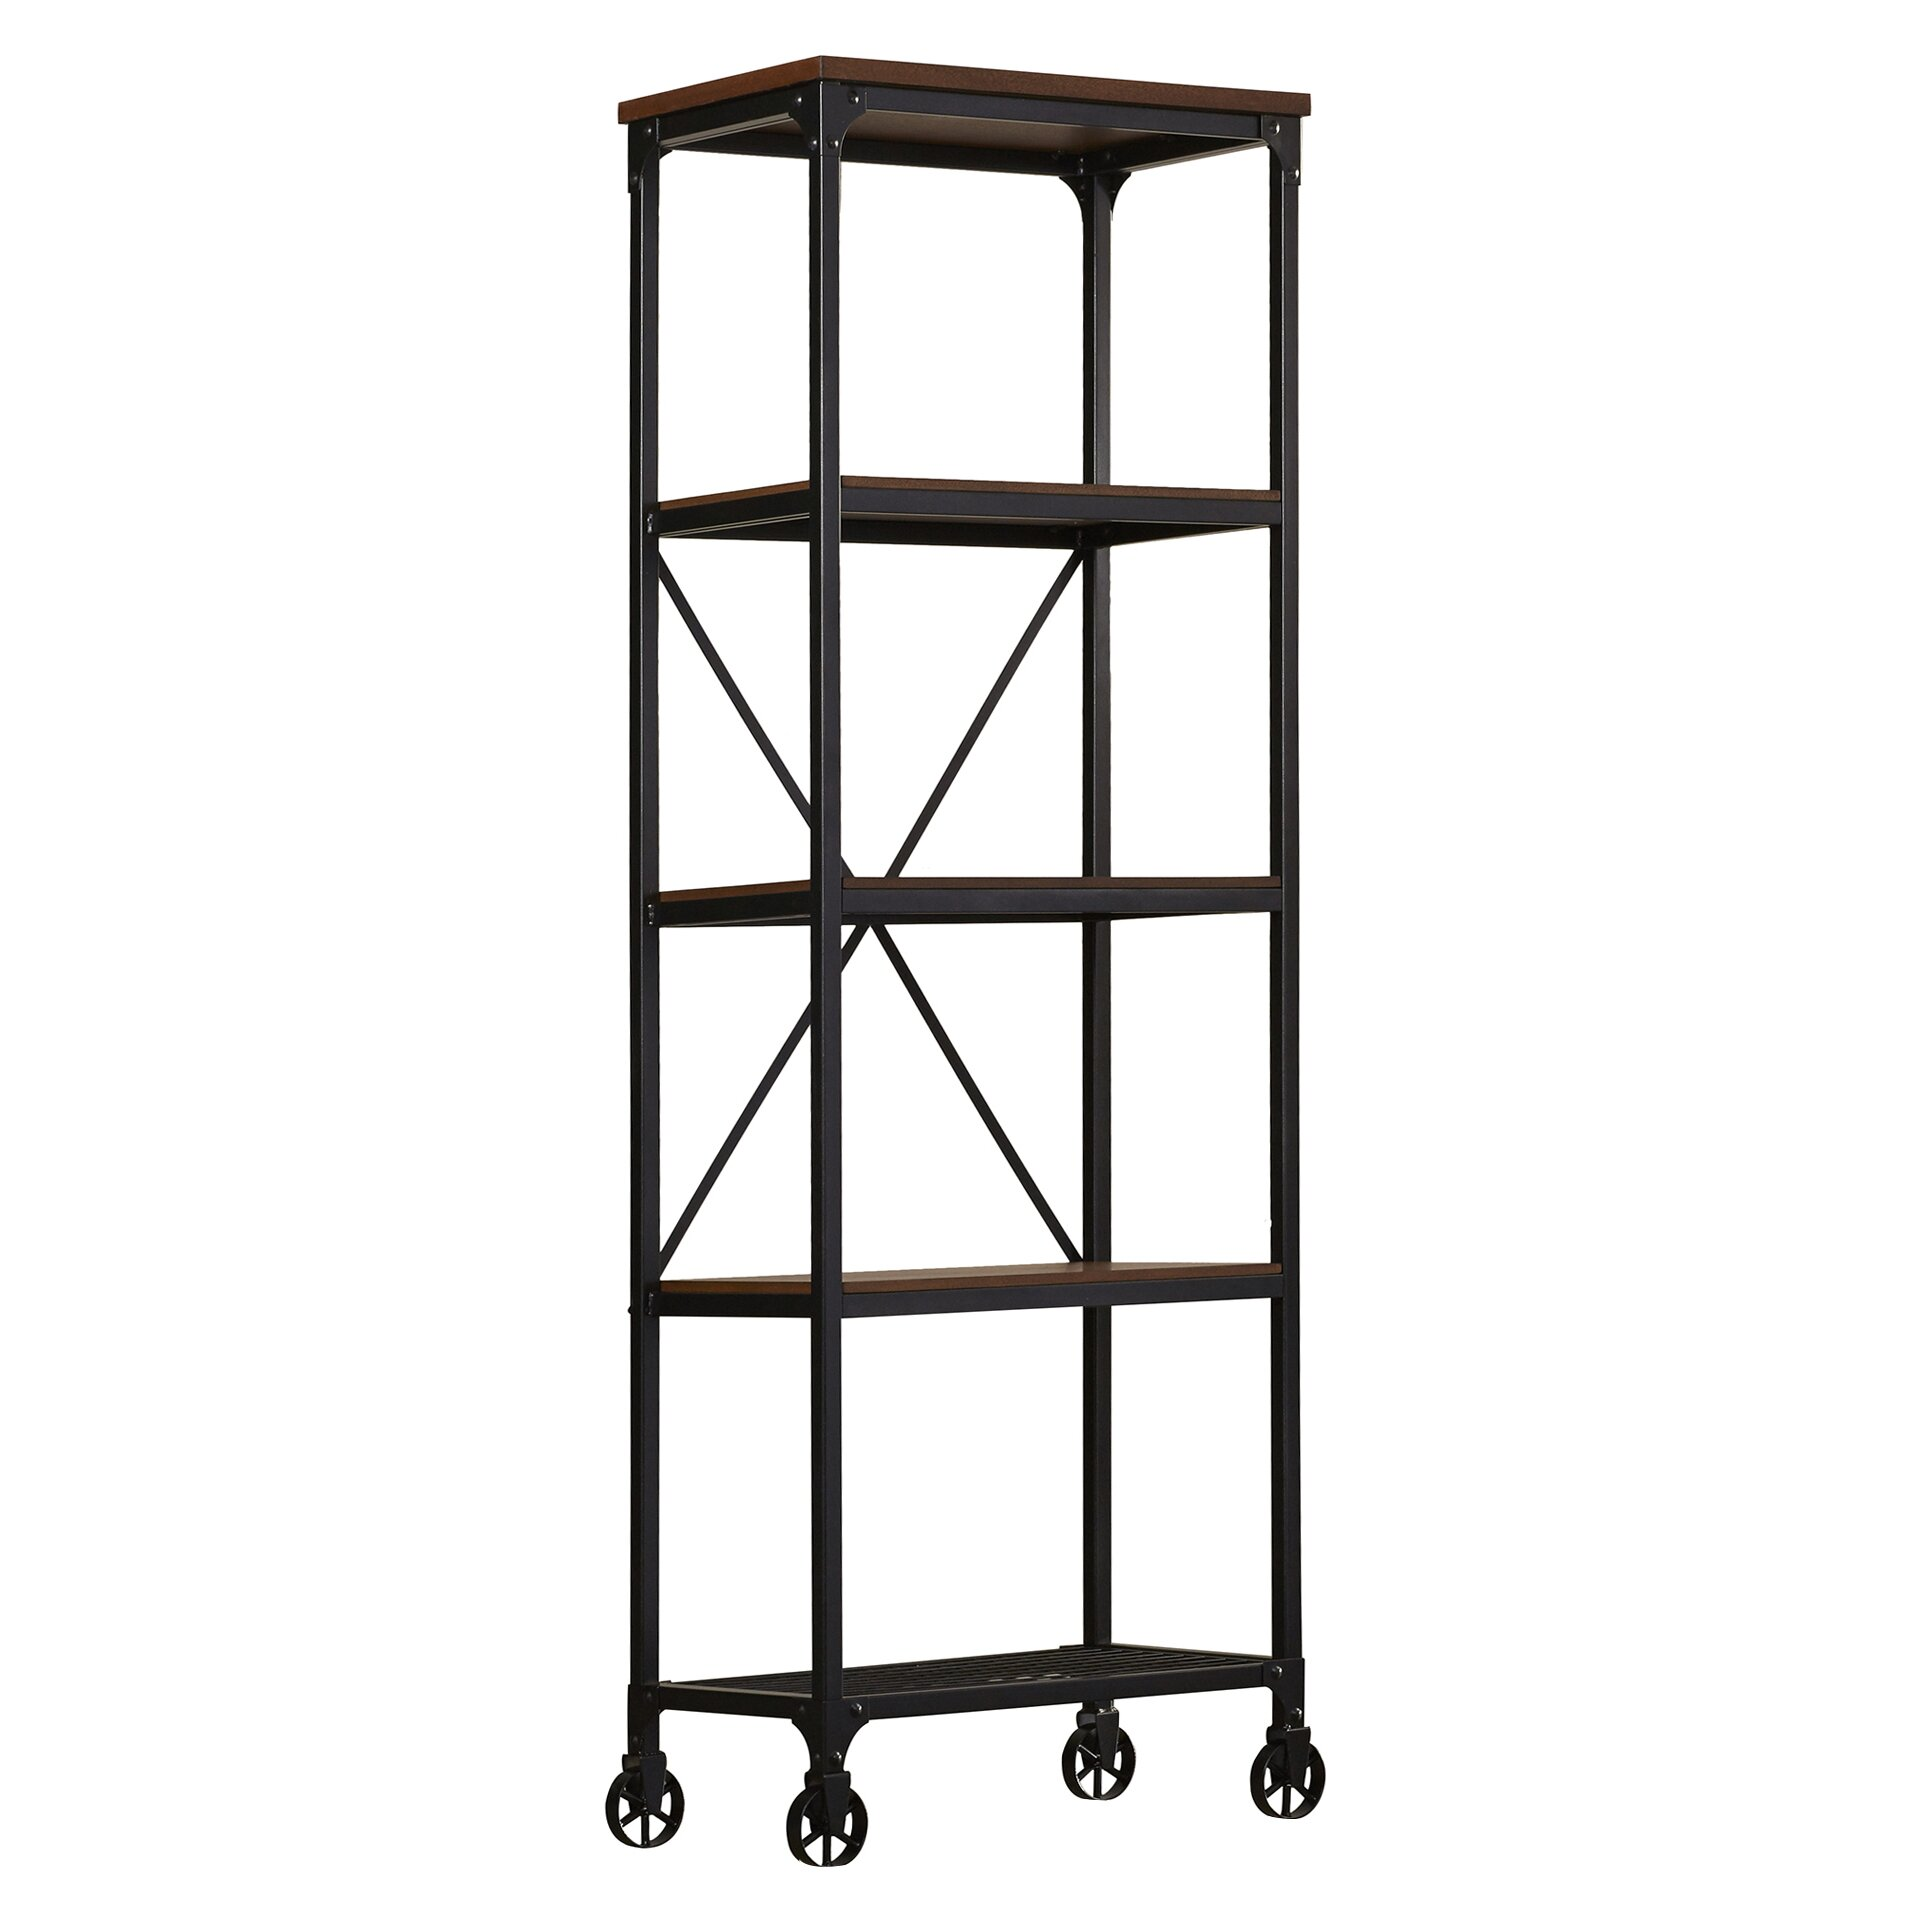 Trent Austin Design C2 AE Madera 63 Etagere Bookcase TADN2330 on heaters for living room